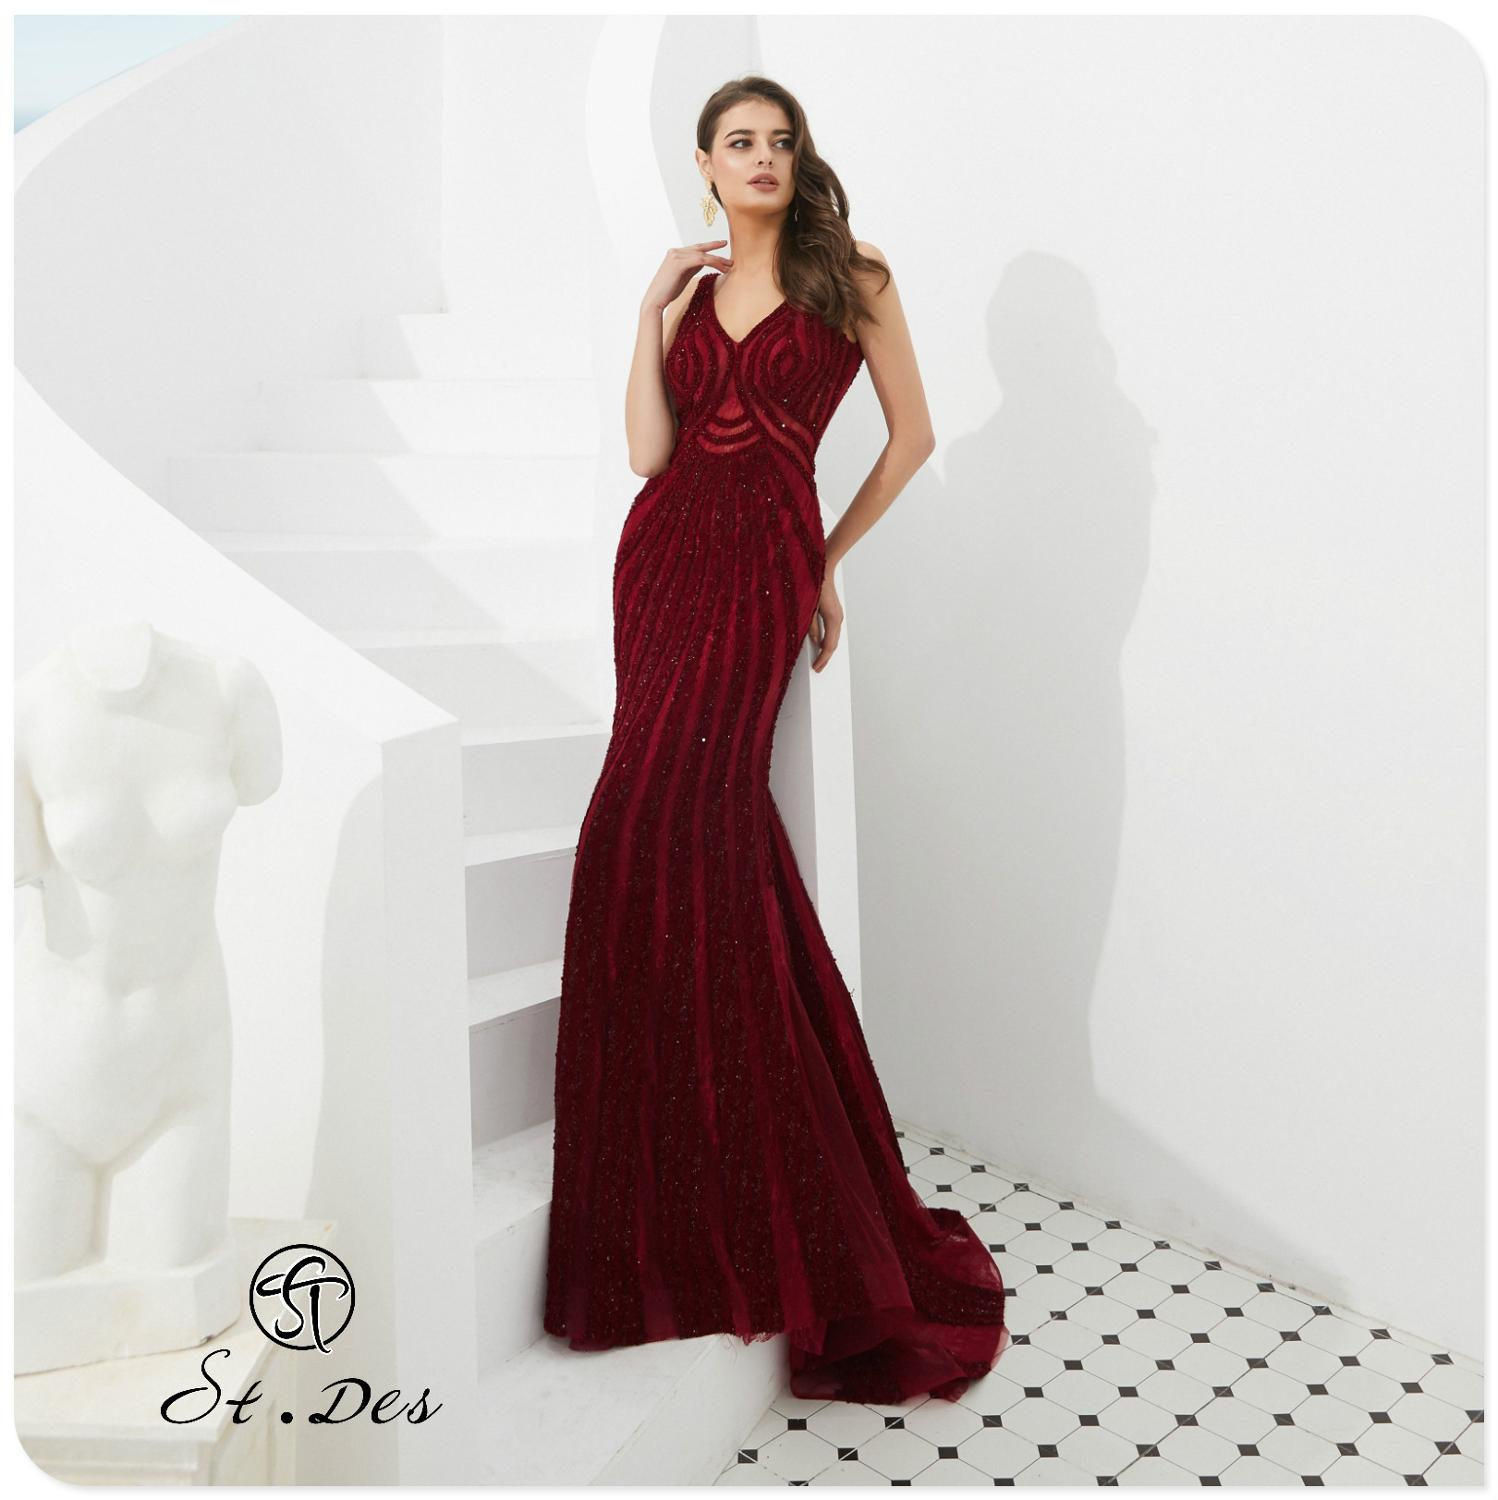 NEW 2020 St.Des Mermaid V-Neck Spaghetti Wine Beading Sleeveless Russian Floor Length Evening Dress Party Dress